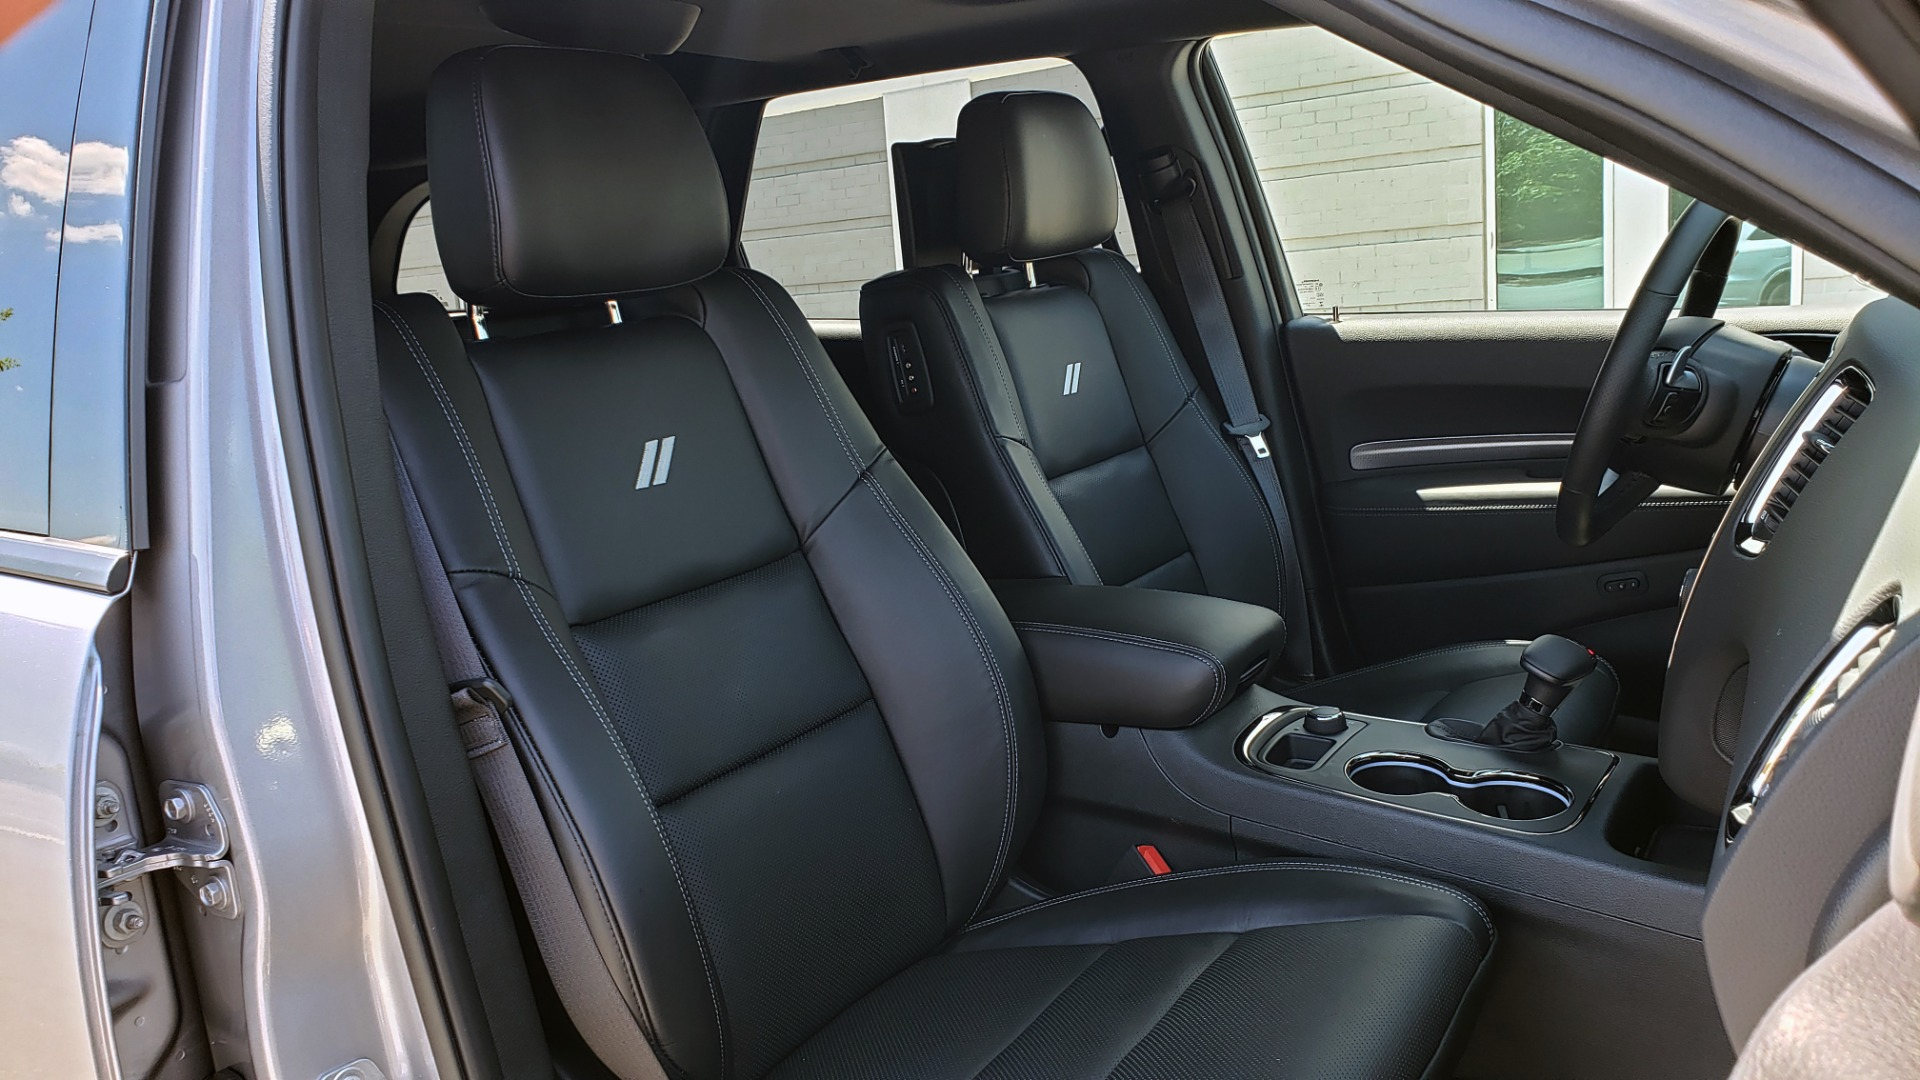 Used 2019 Dodge DURANGO R/T BLACKTOP AWD / TECH / ADAPT CRUS / TOW GROUP / SUNROOF / REARVIEW for sale Sold at Formula Imports in Charlotte NC 28227 76